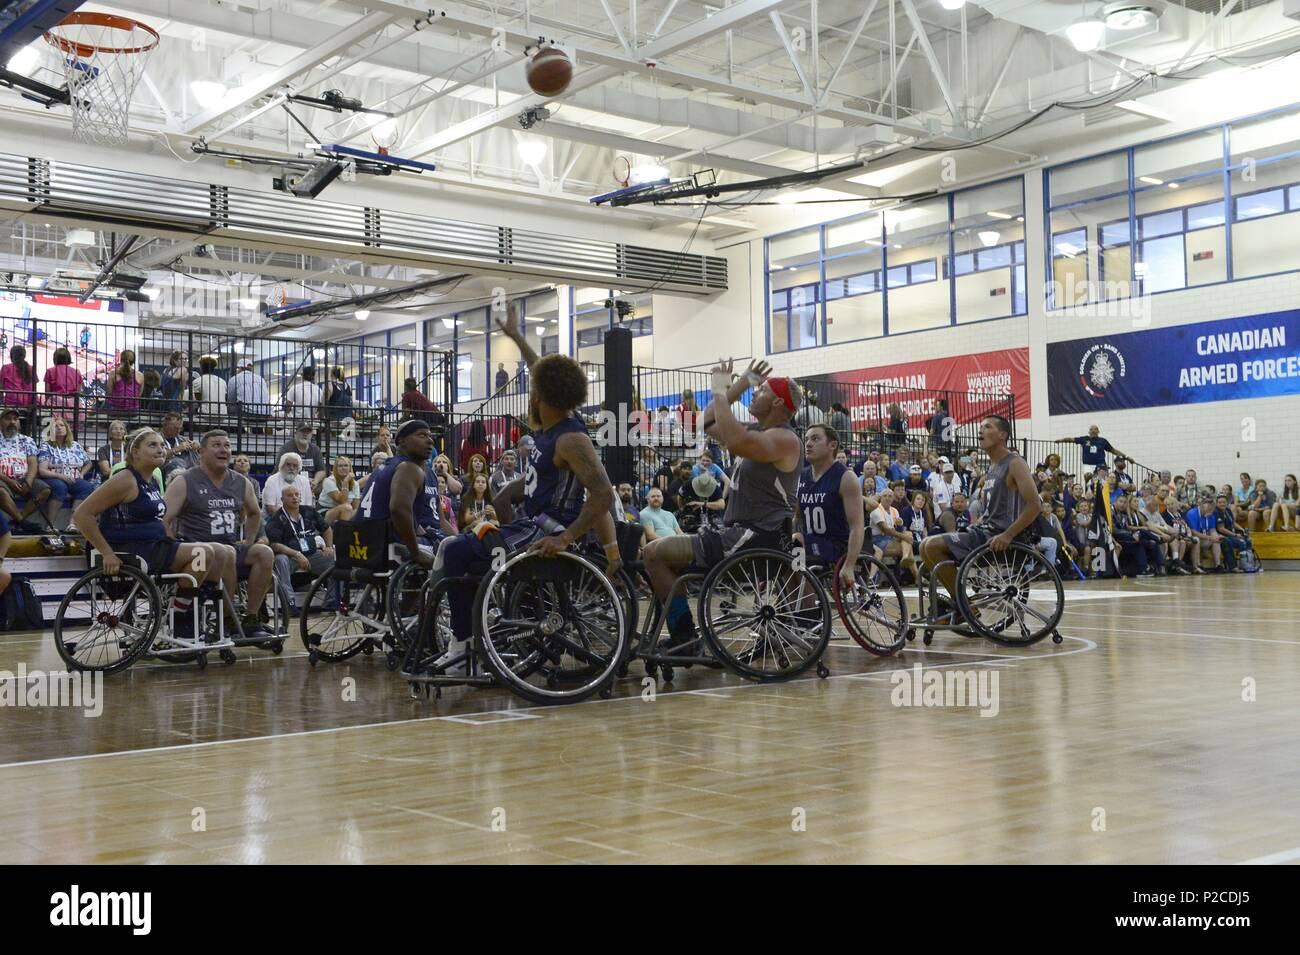 Army Sgt. 1st Class Brant Ireland from Team SOCOM takes a shot against Navy in the wheelchair basketball game during the 2018 Warrior Games held at the Air Force Academy in Colorado Springs June 4, 2018, June 4, 2018. Several members of Team SOCOM advanced to the finals. Created in 2010, the DoD Warrior Games introduce wounded, ill and injured service members and veterans to Paralympic-style sports. Warrior Games showcases the resilient spirit of today's wounded, ill or injured service members from all branches of the military. These athletes have overcome significant physical and behavioral i - Stock Image